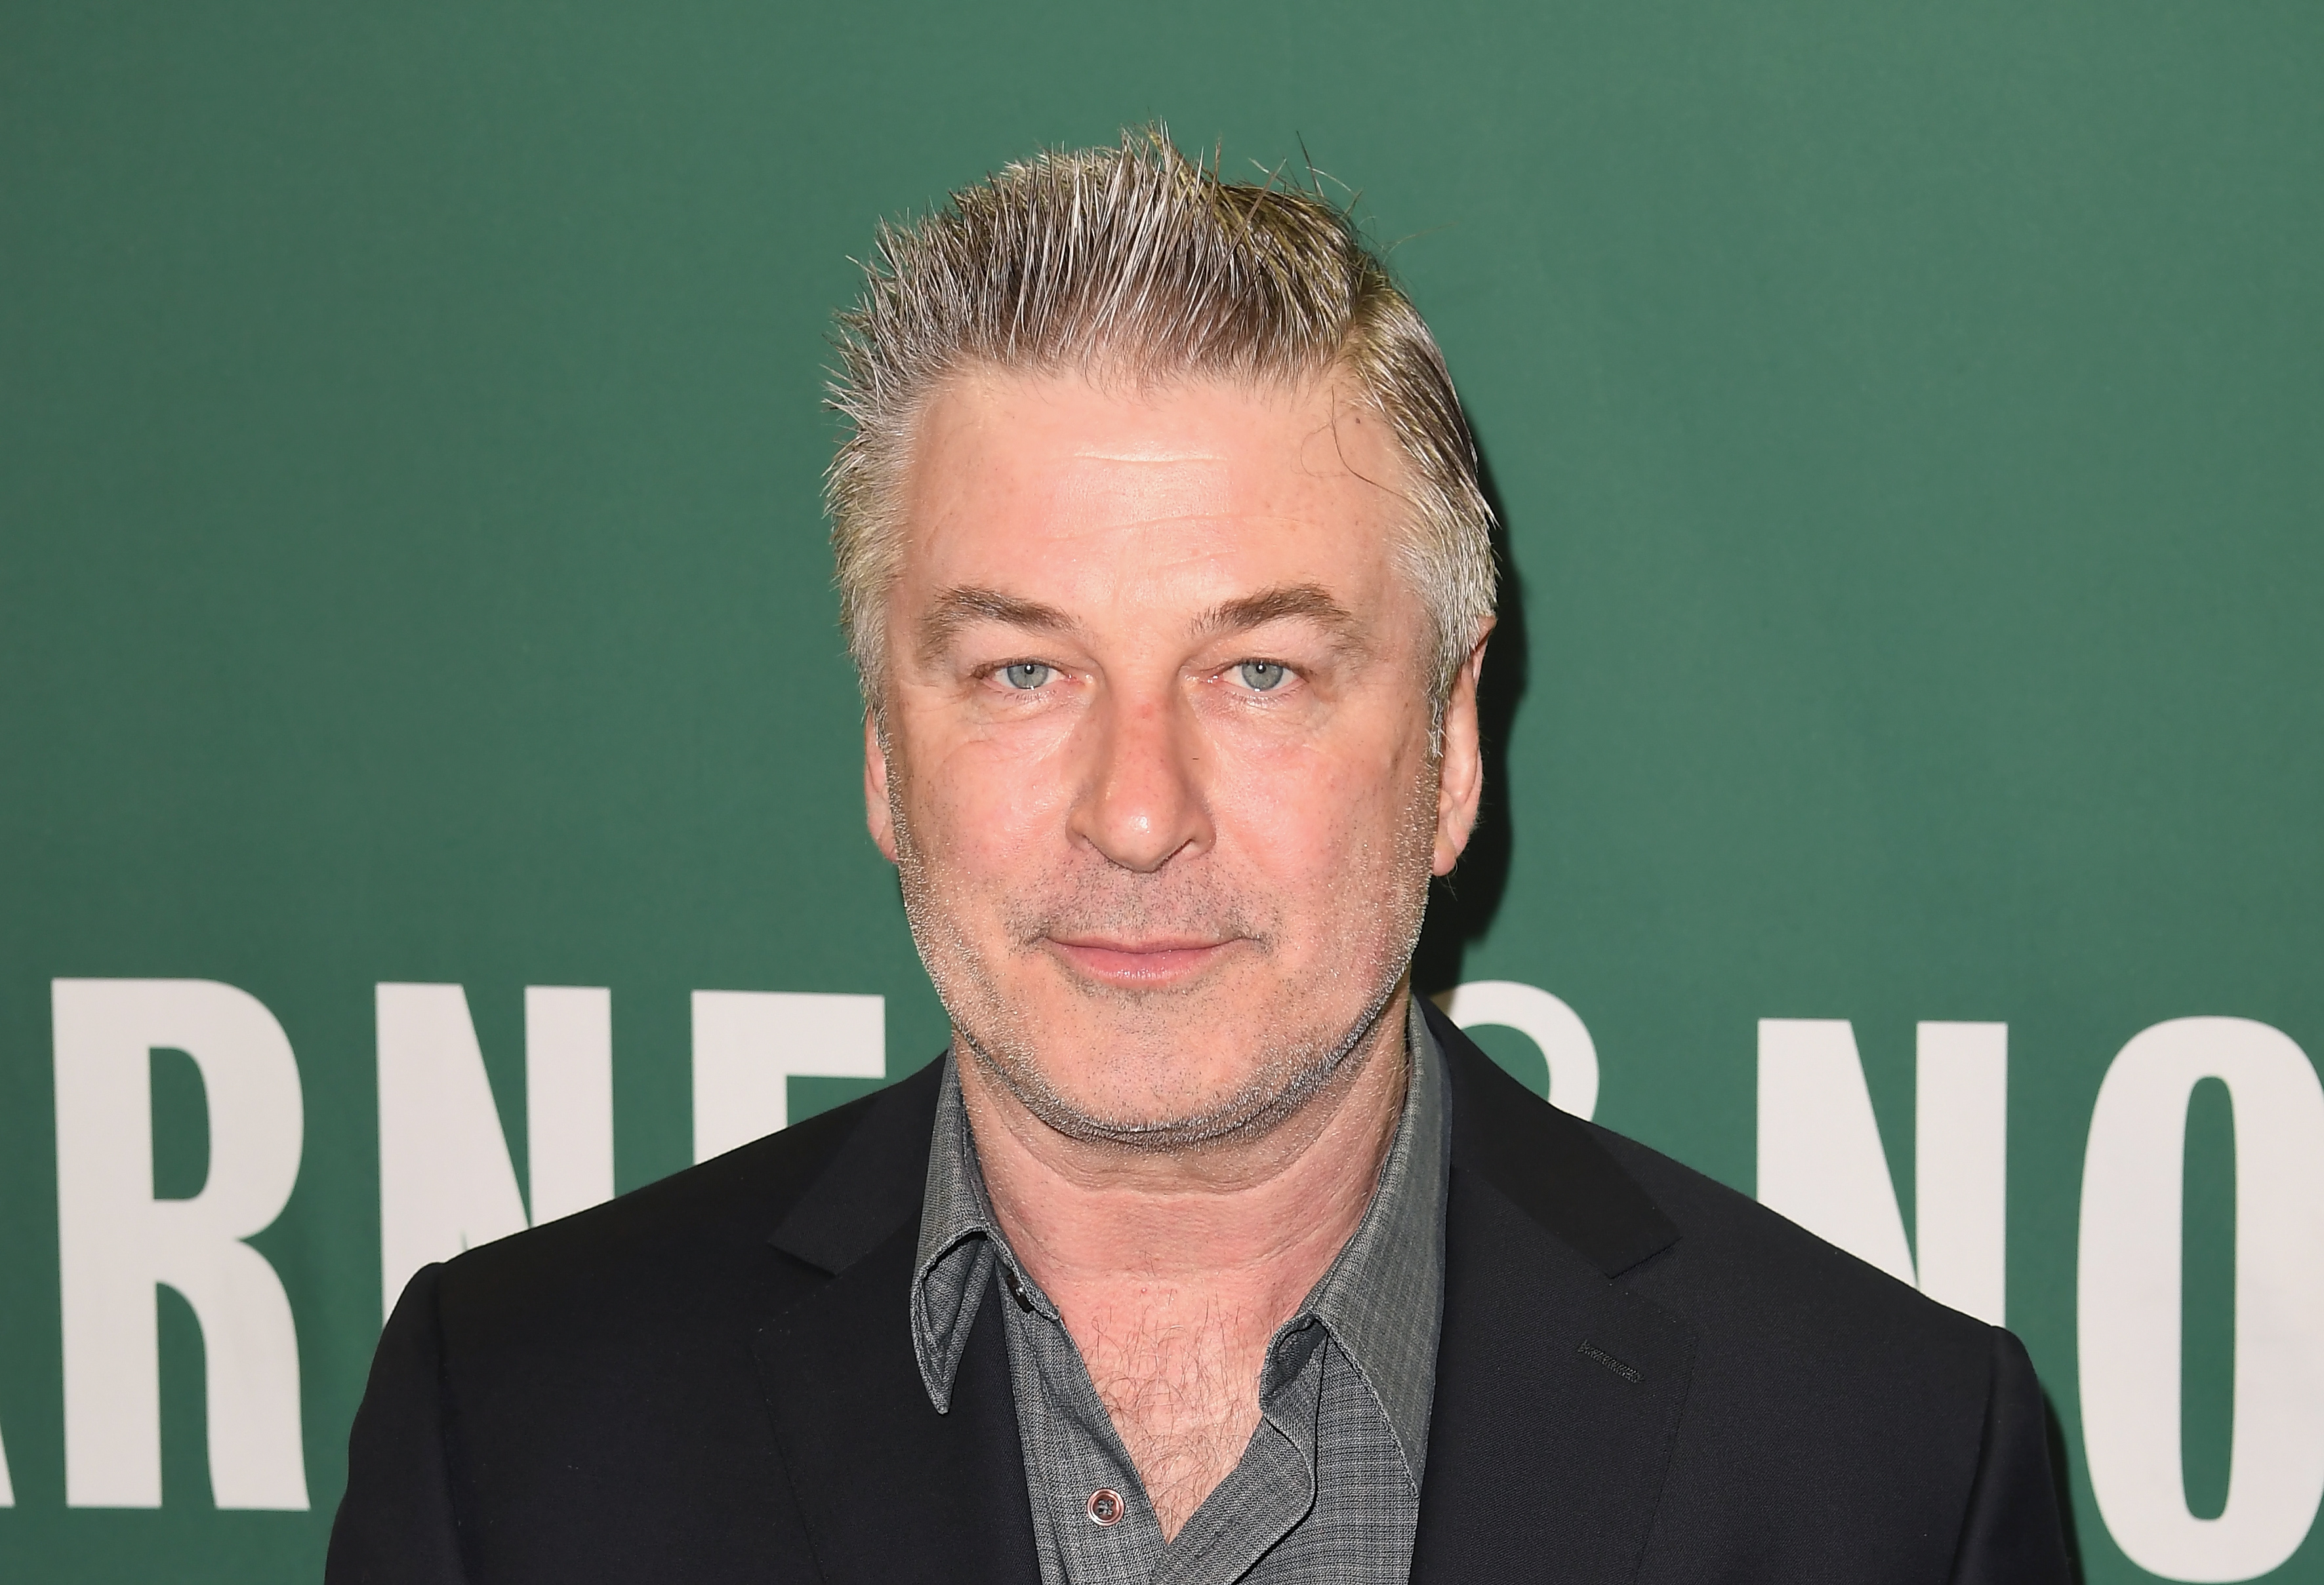 Arrestan al actor Alec Baldwin en Nueva York